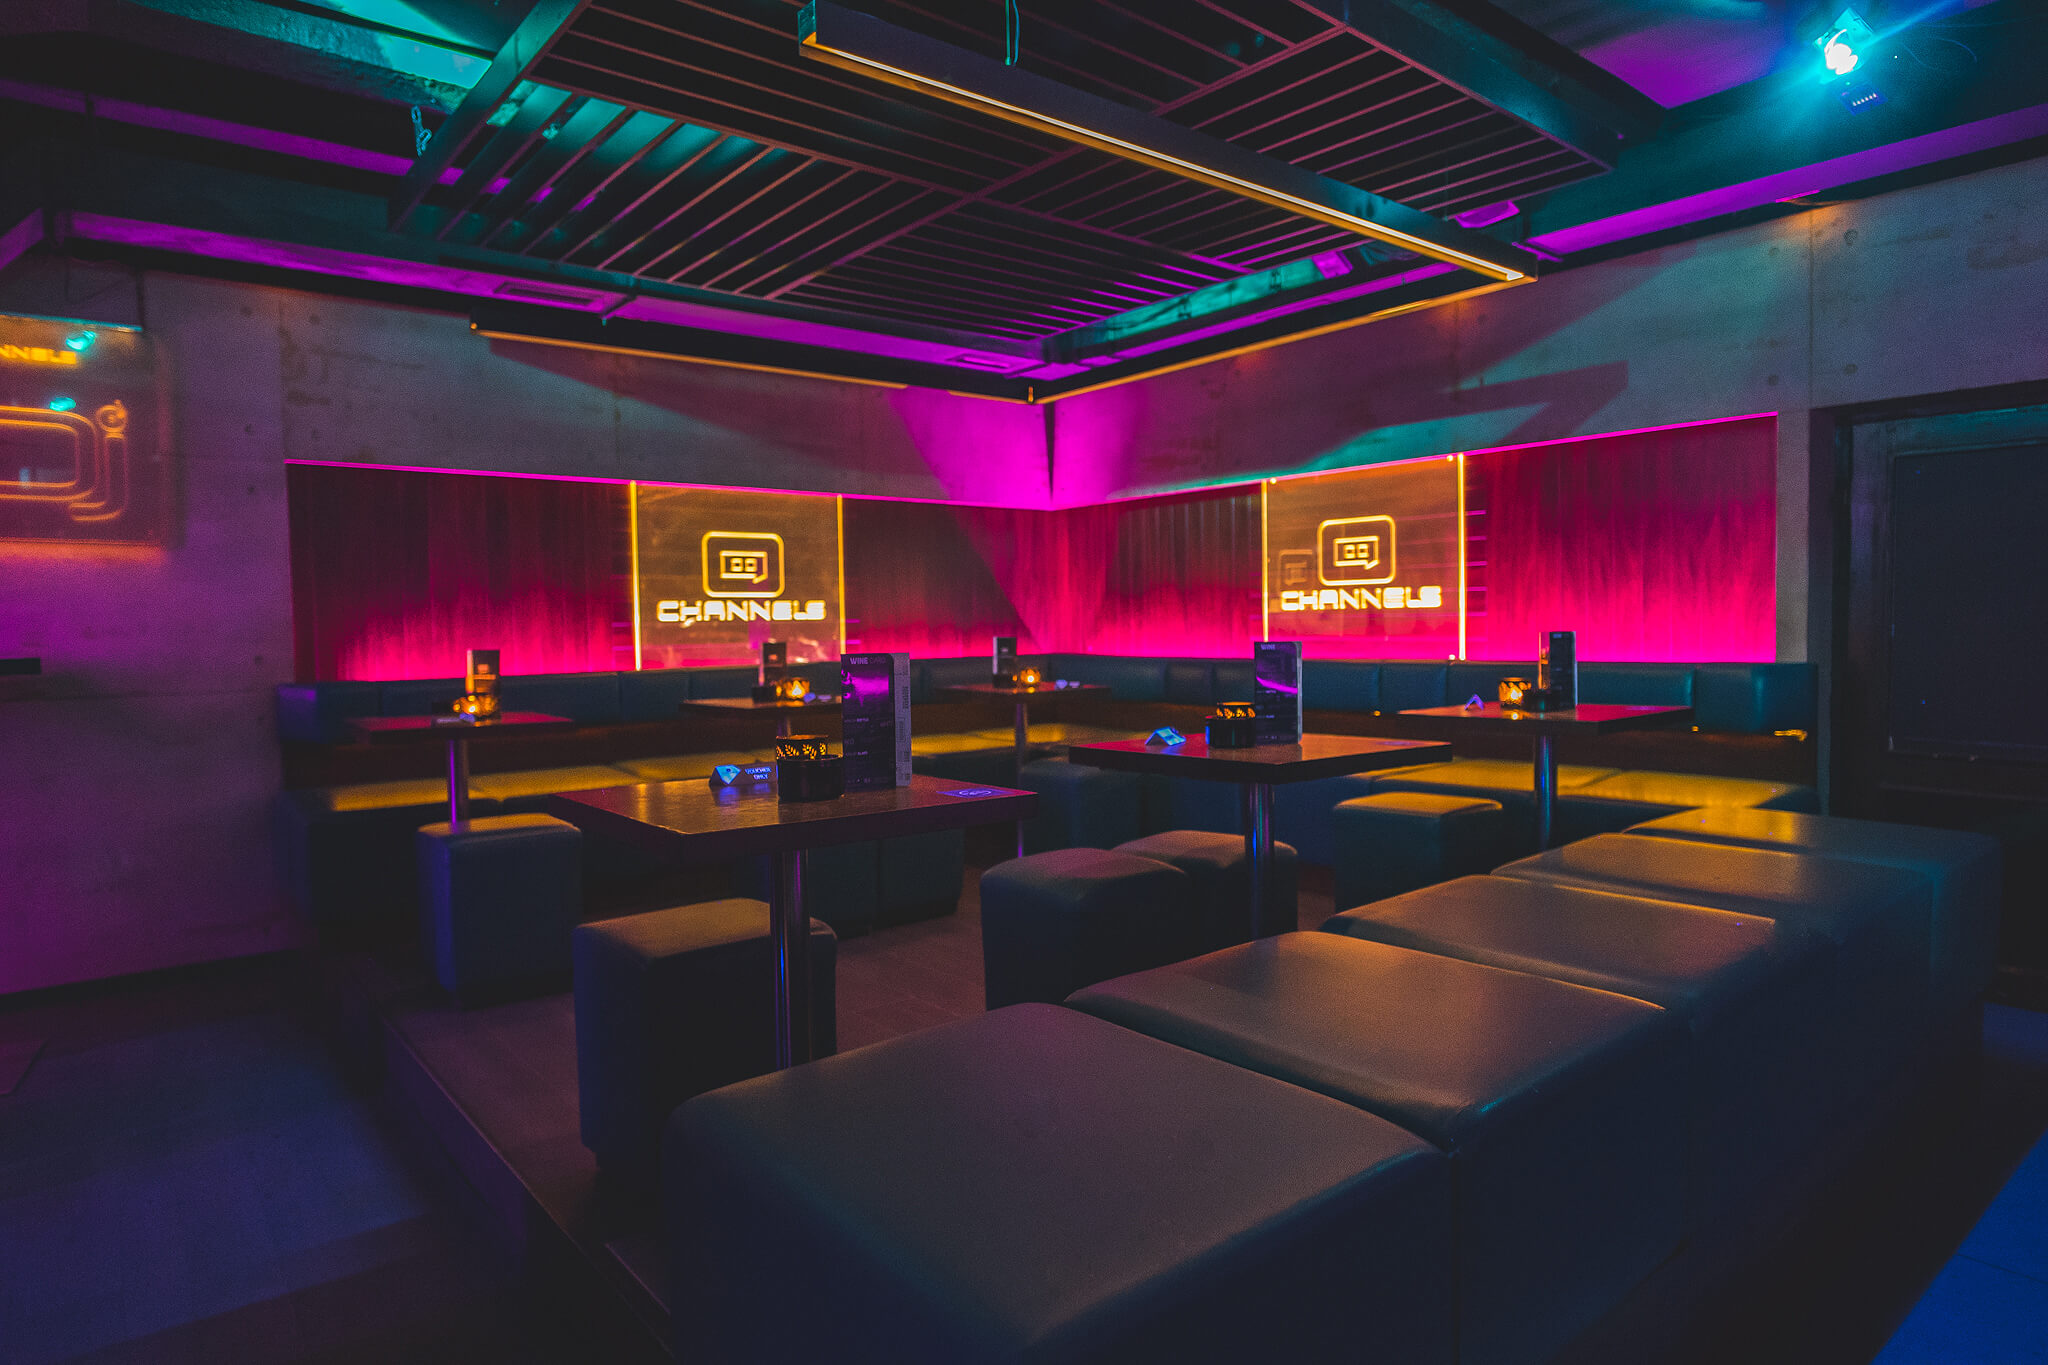 Channels club interior1